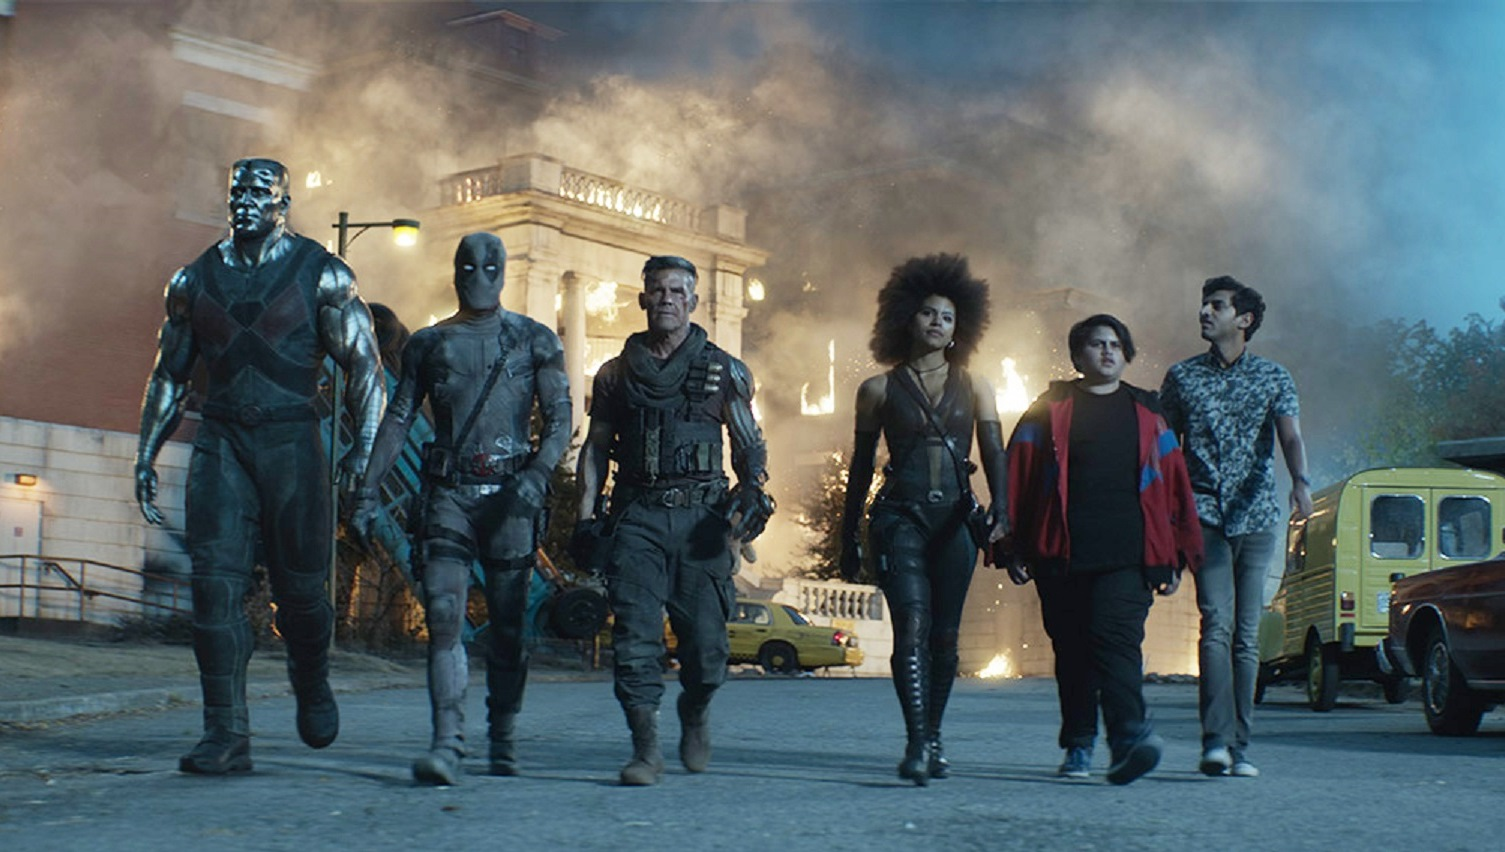 Colossus, Deadpool (Ryan Reynolds), Cable (James Brolin), Domino (Zazie Beetz), Firefist (Julian Dennison), Dopinder (Karan Soni) in Deadpool 2 (2018)